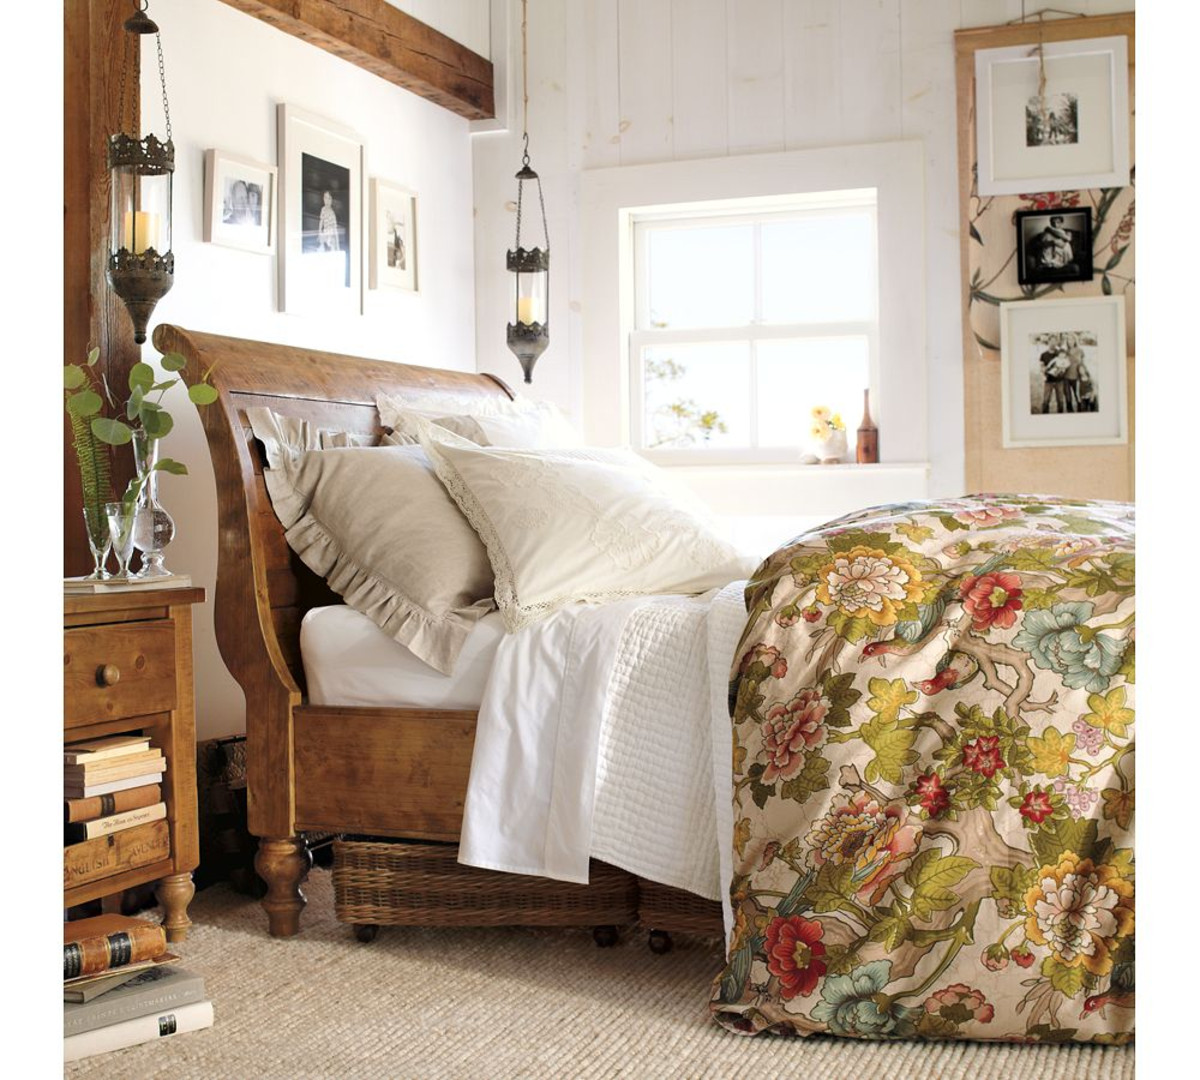 Pottery Barn Sleigh Bed | Queen Bed with Headboard | White Leather Sleigh Bed Frame